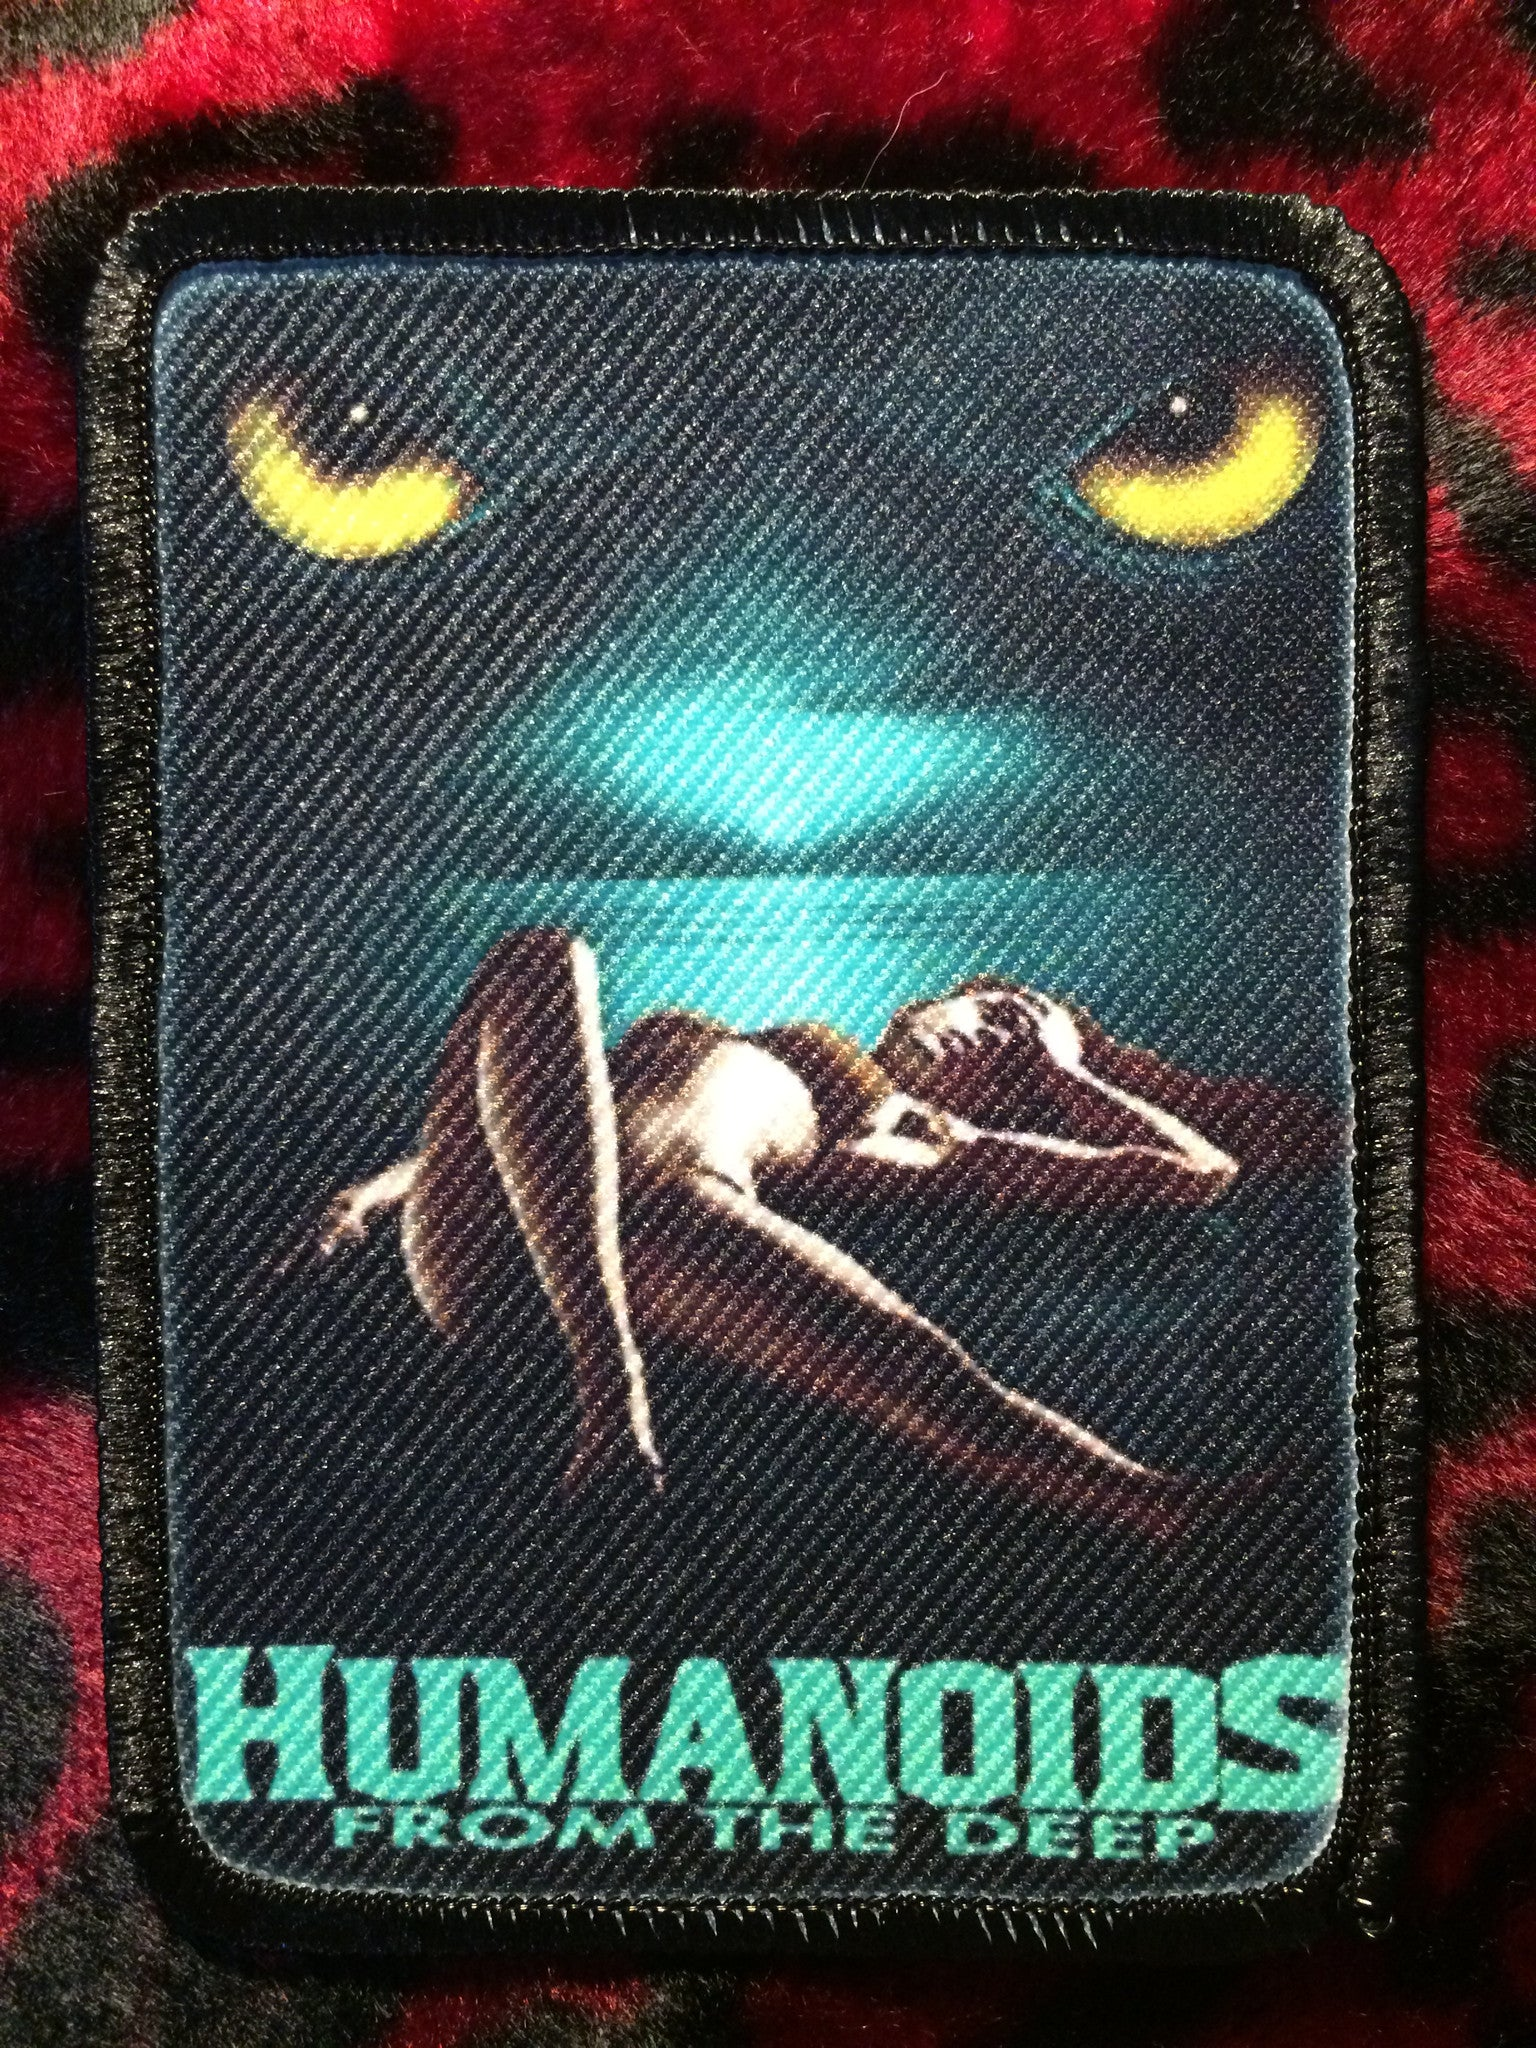 Humanoids From The Deep Patch